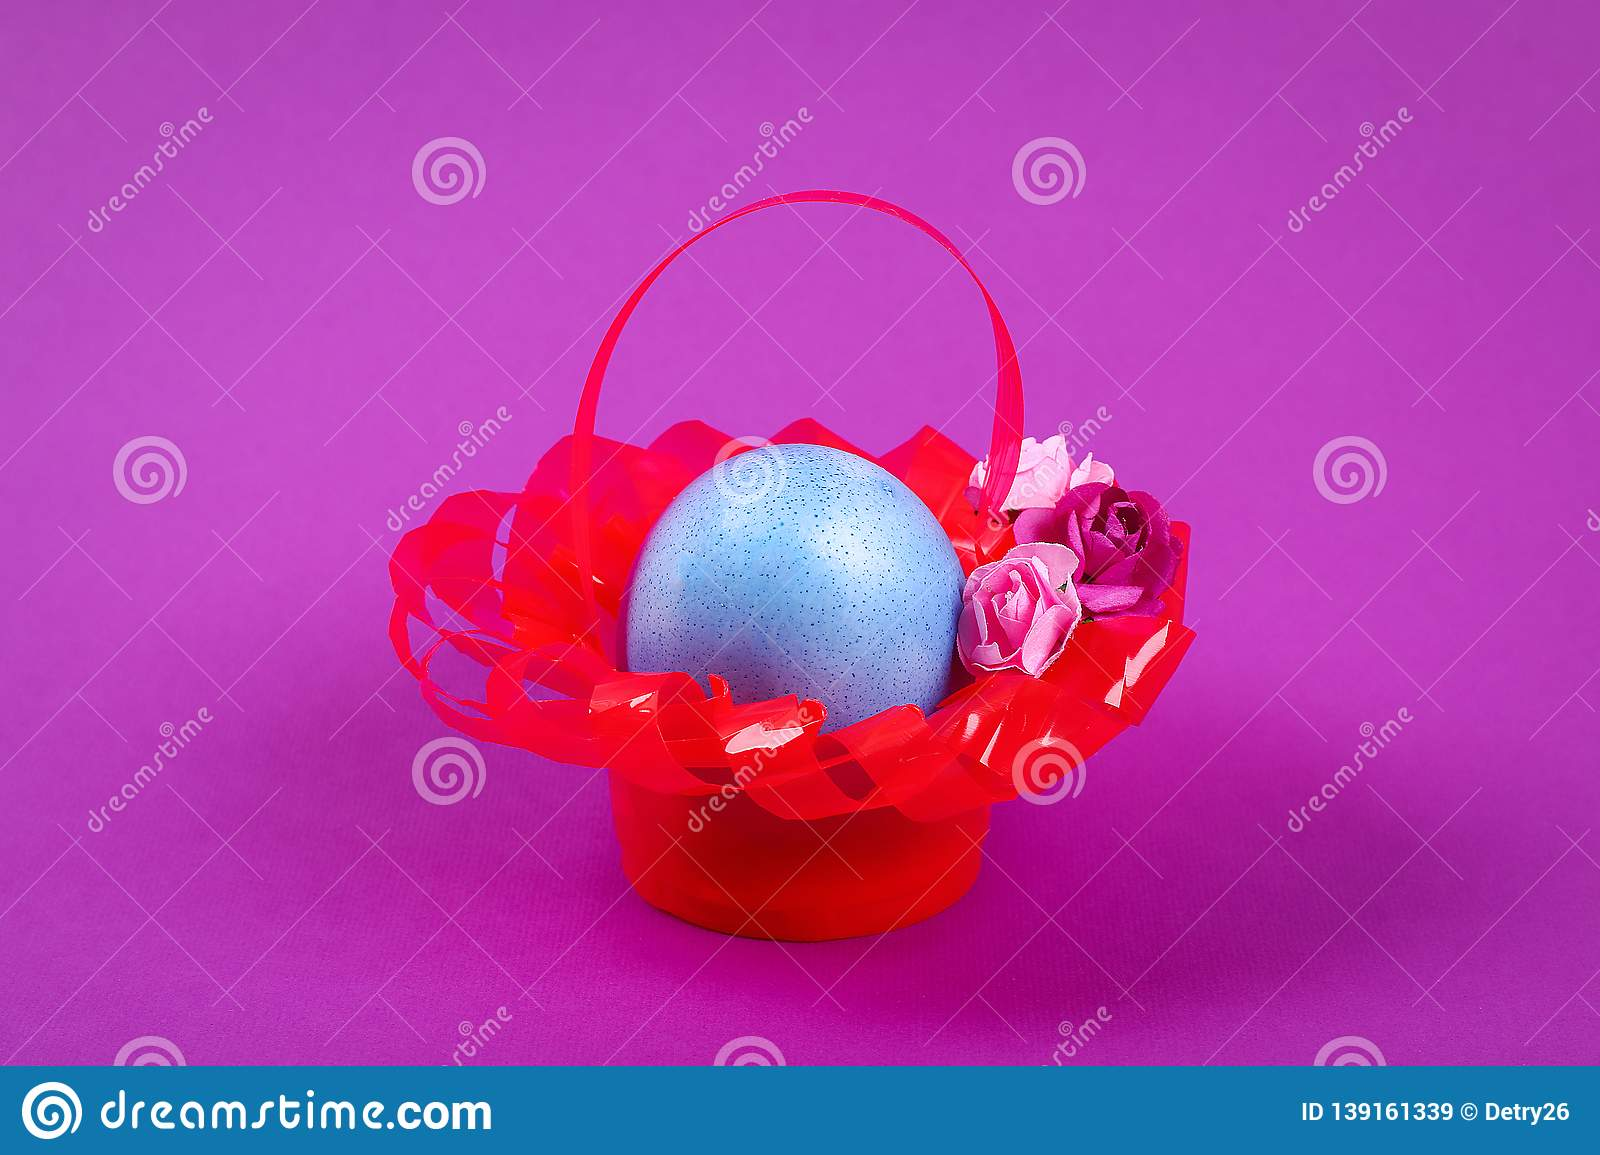 Diy Easter egg basket made of red plastic cup decorated with artificial flowers purple background